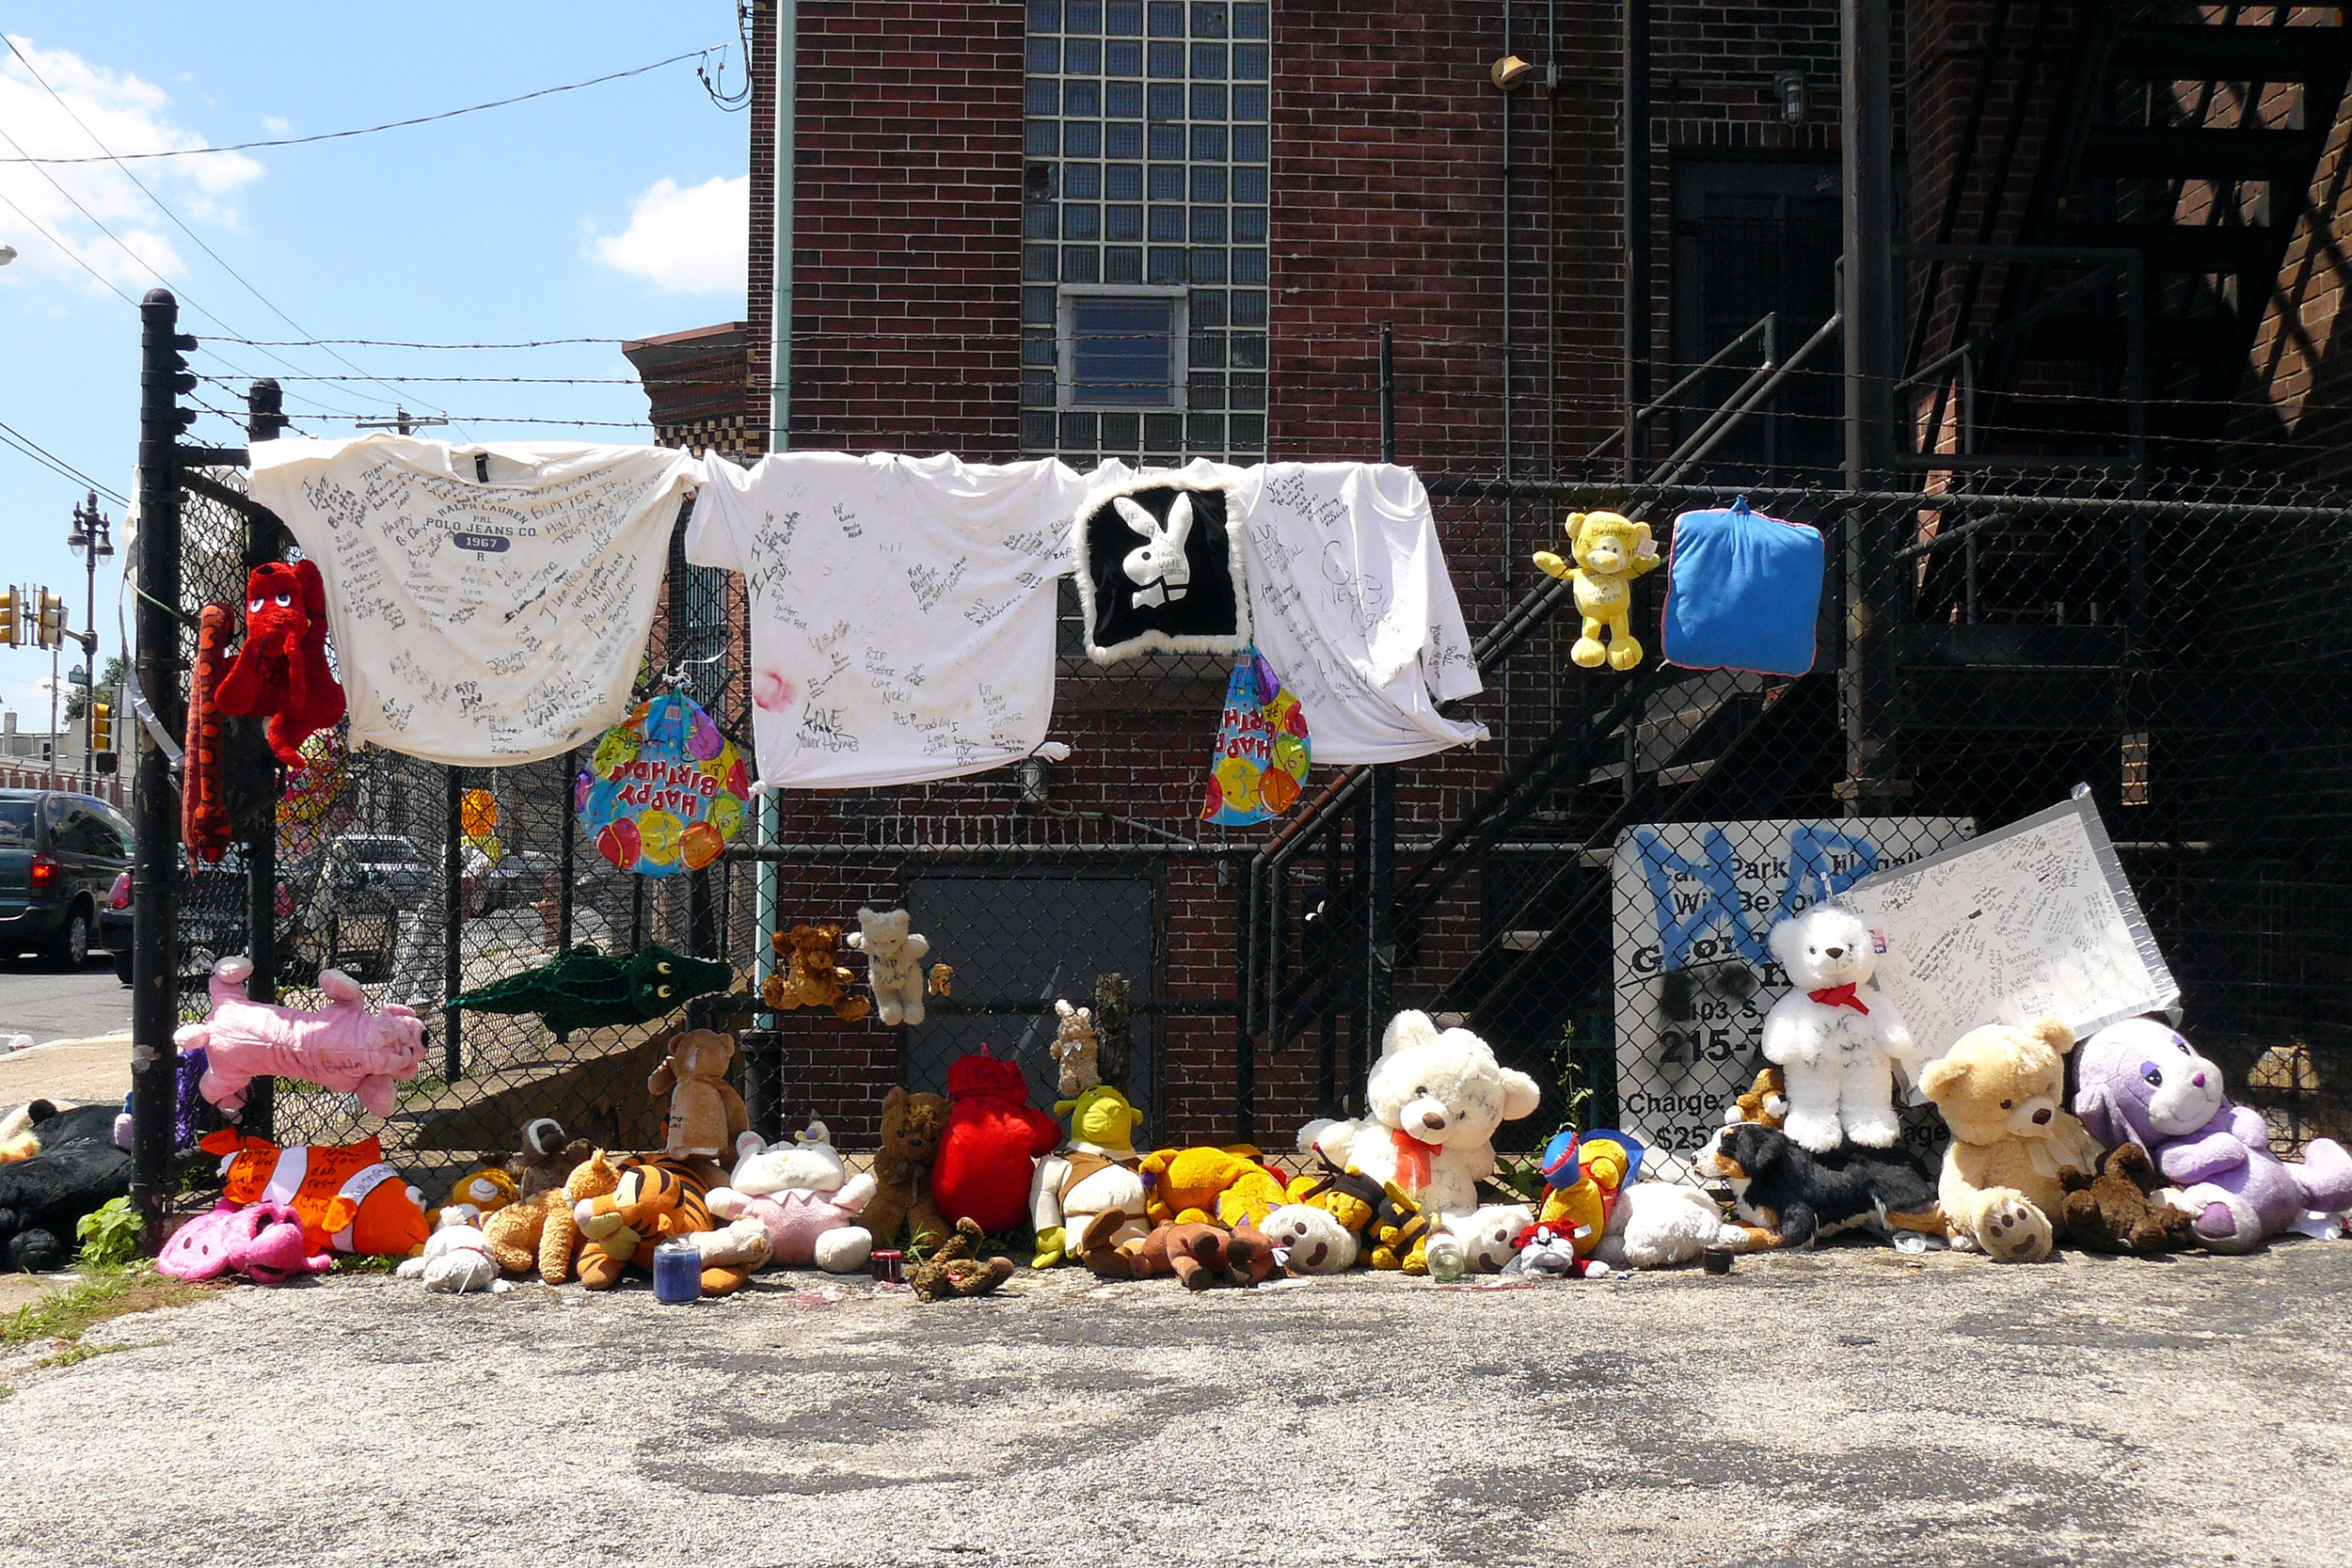 Urban Memorials - These images were all taken on the streets of Philadelphia. The objects brought and the emergent nature of display at an impromptu memorial site, are by-products of our culture. Here, people have been taken before their time. What do you bring for a child that has been gunned down? How does one express their grief and sorrow for a friend or neighbor? Who cleans the site up and when? Where does it all go? When will it stop?Click on the image for more